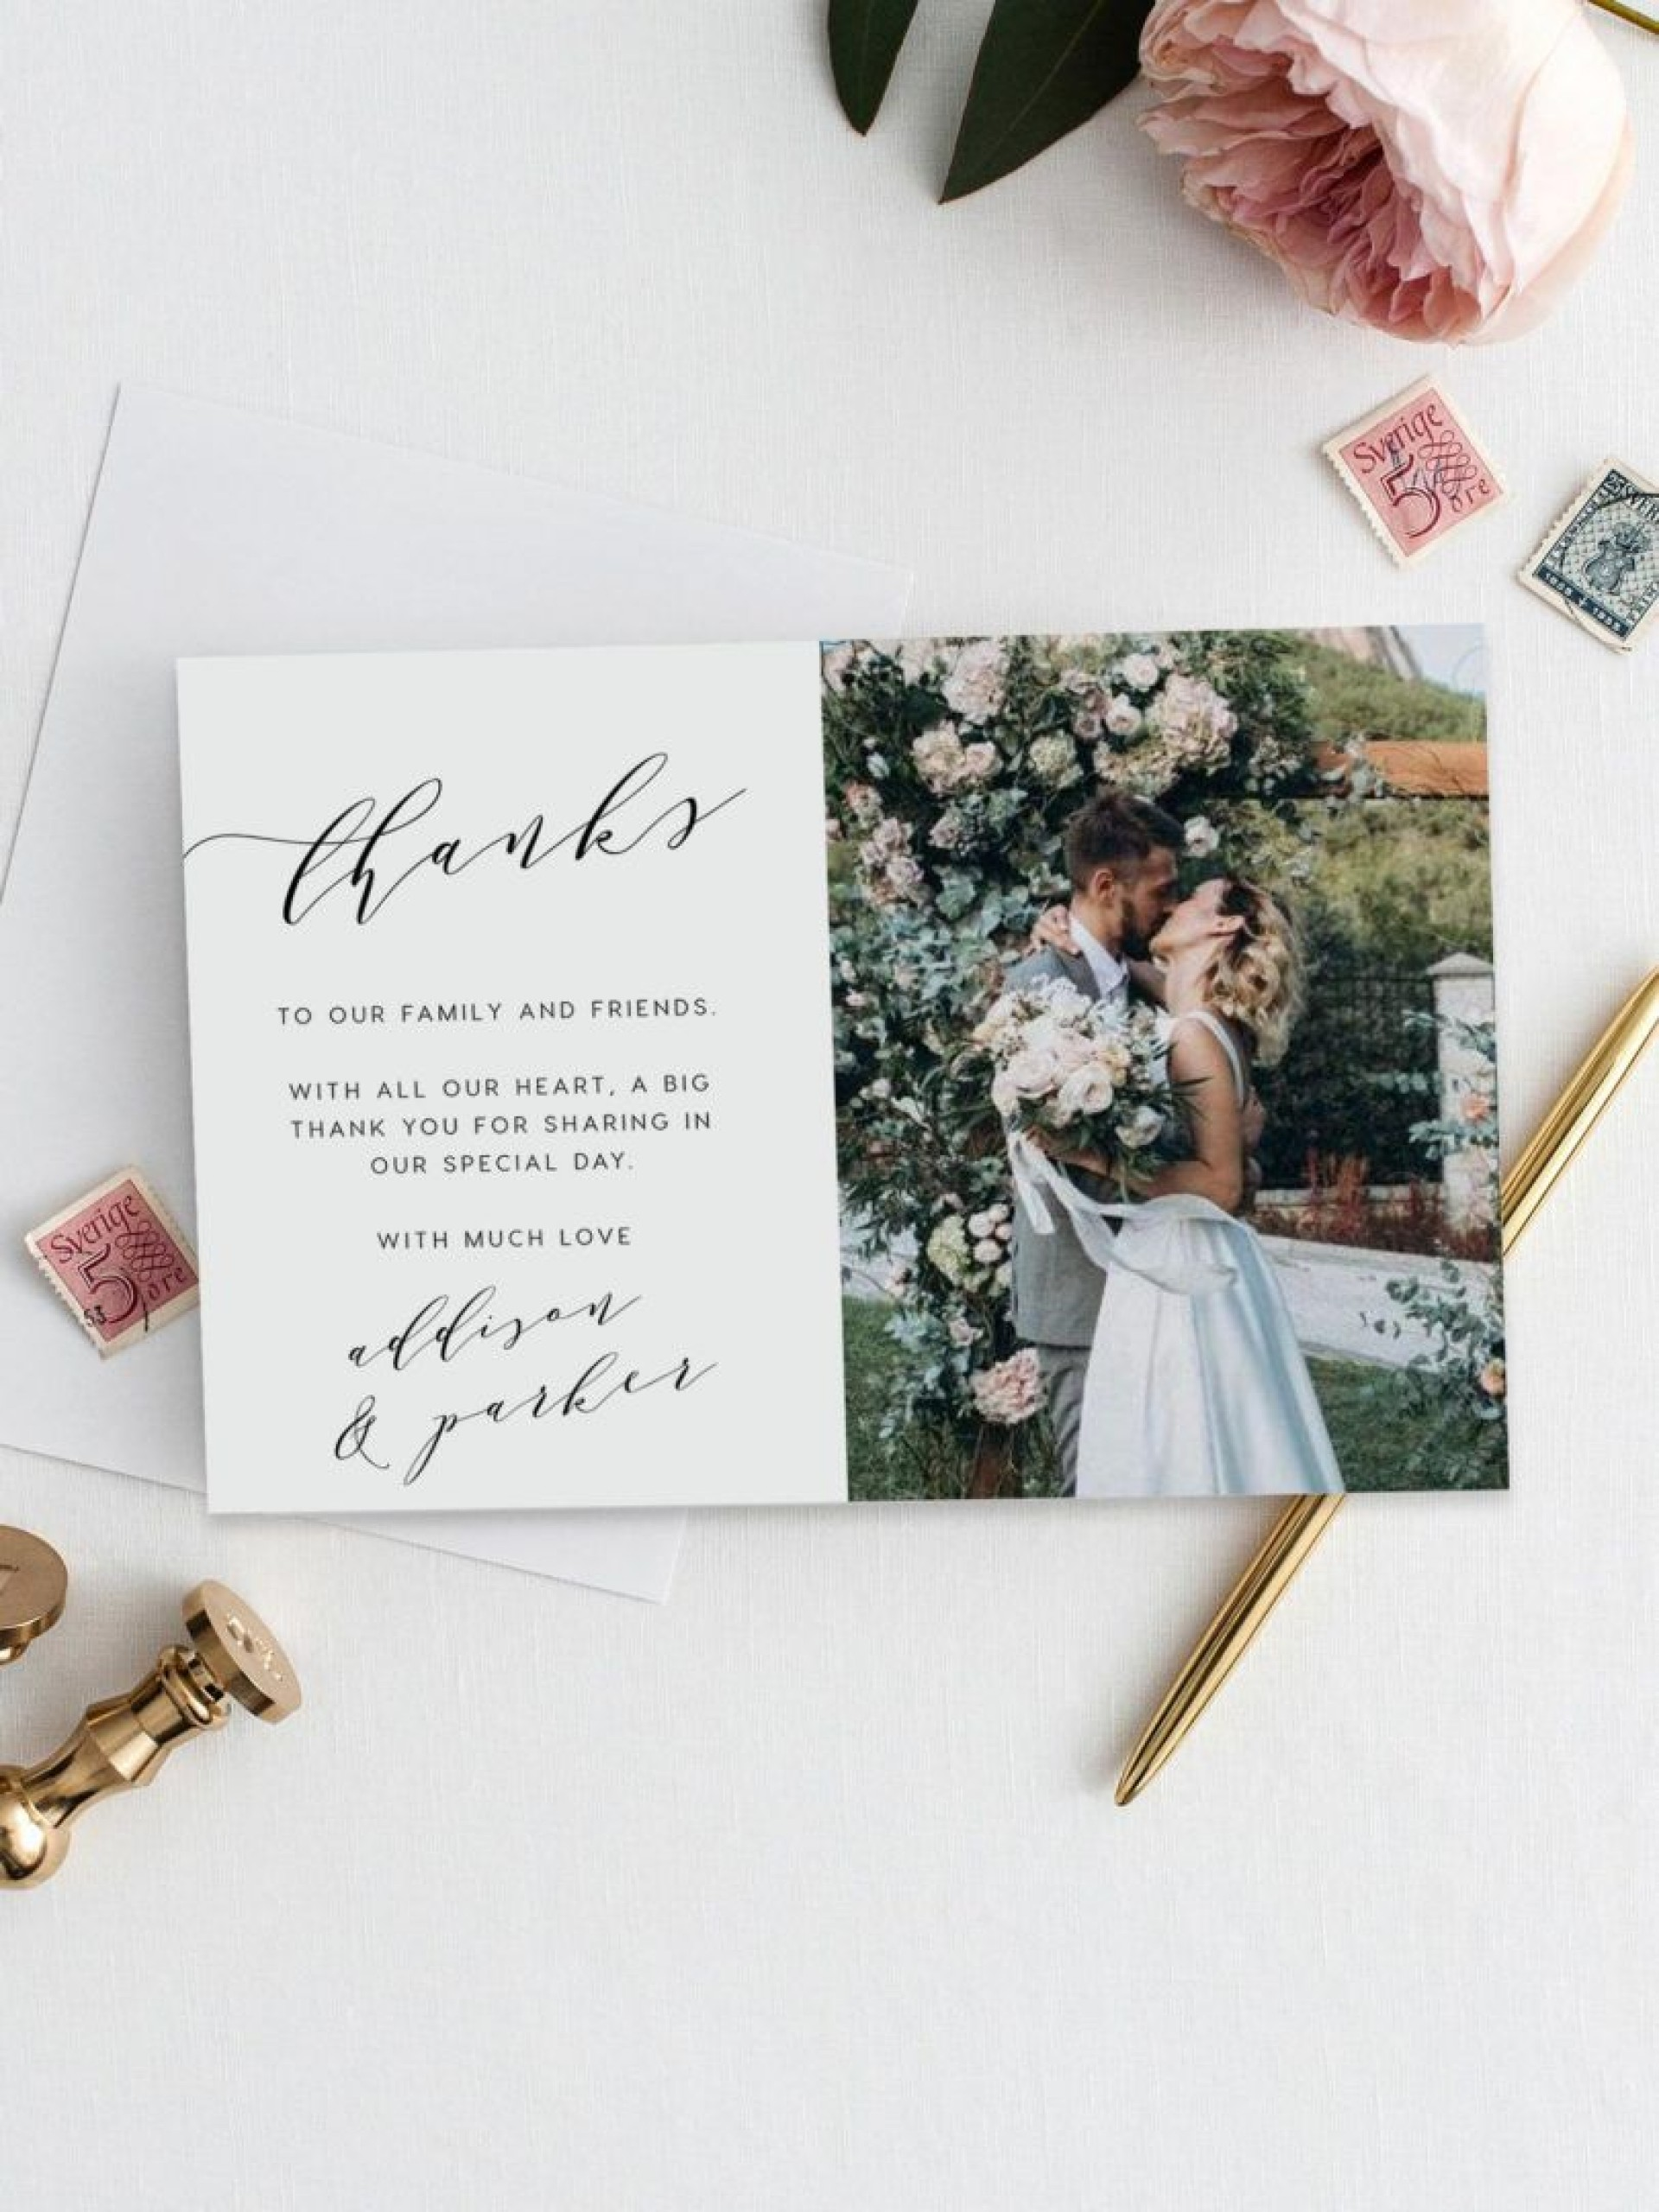 008 Dreaded Thank You Note Format Wedding Highest Quality  Example Card Wording Not Attending Sample For Gift1920